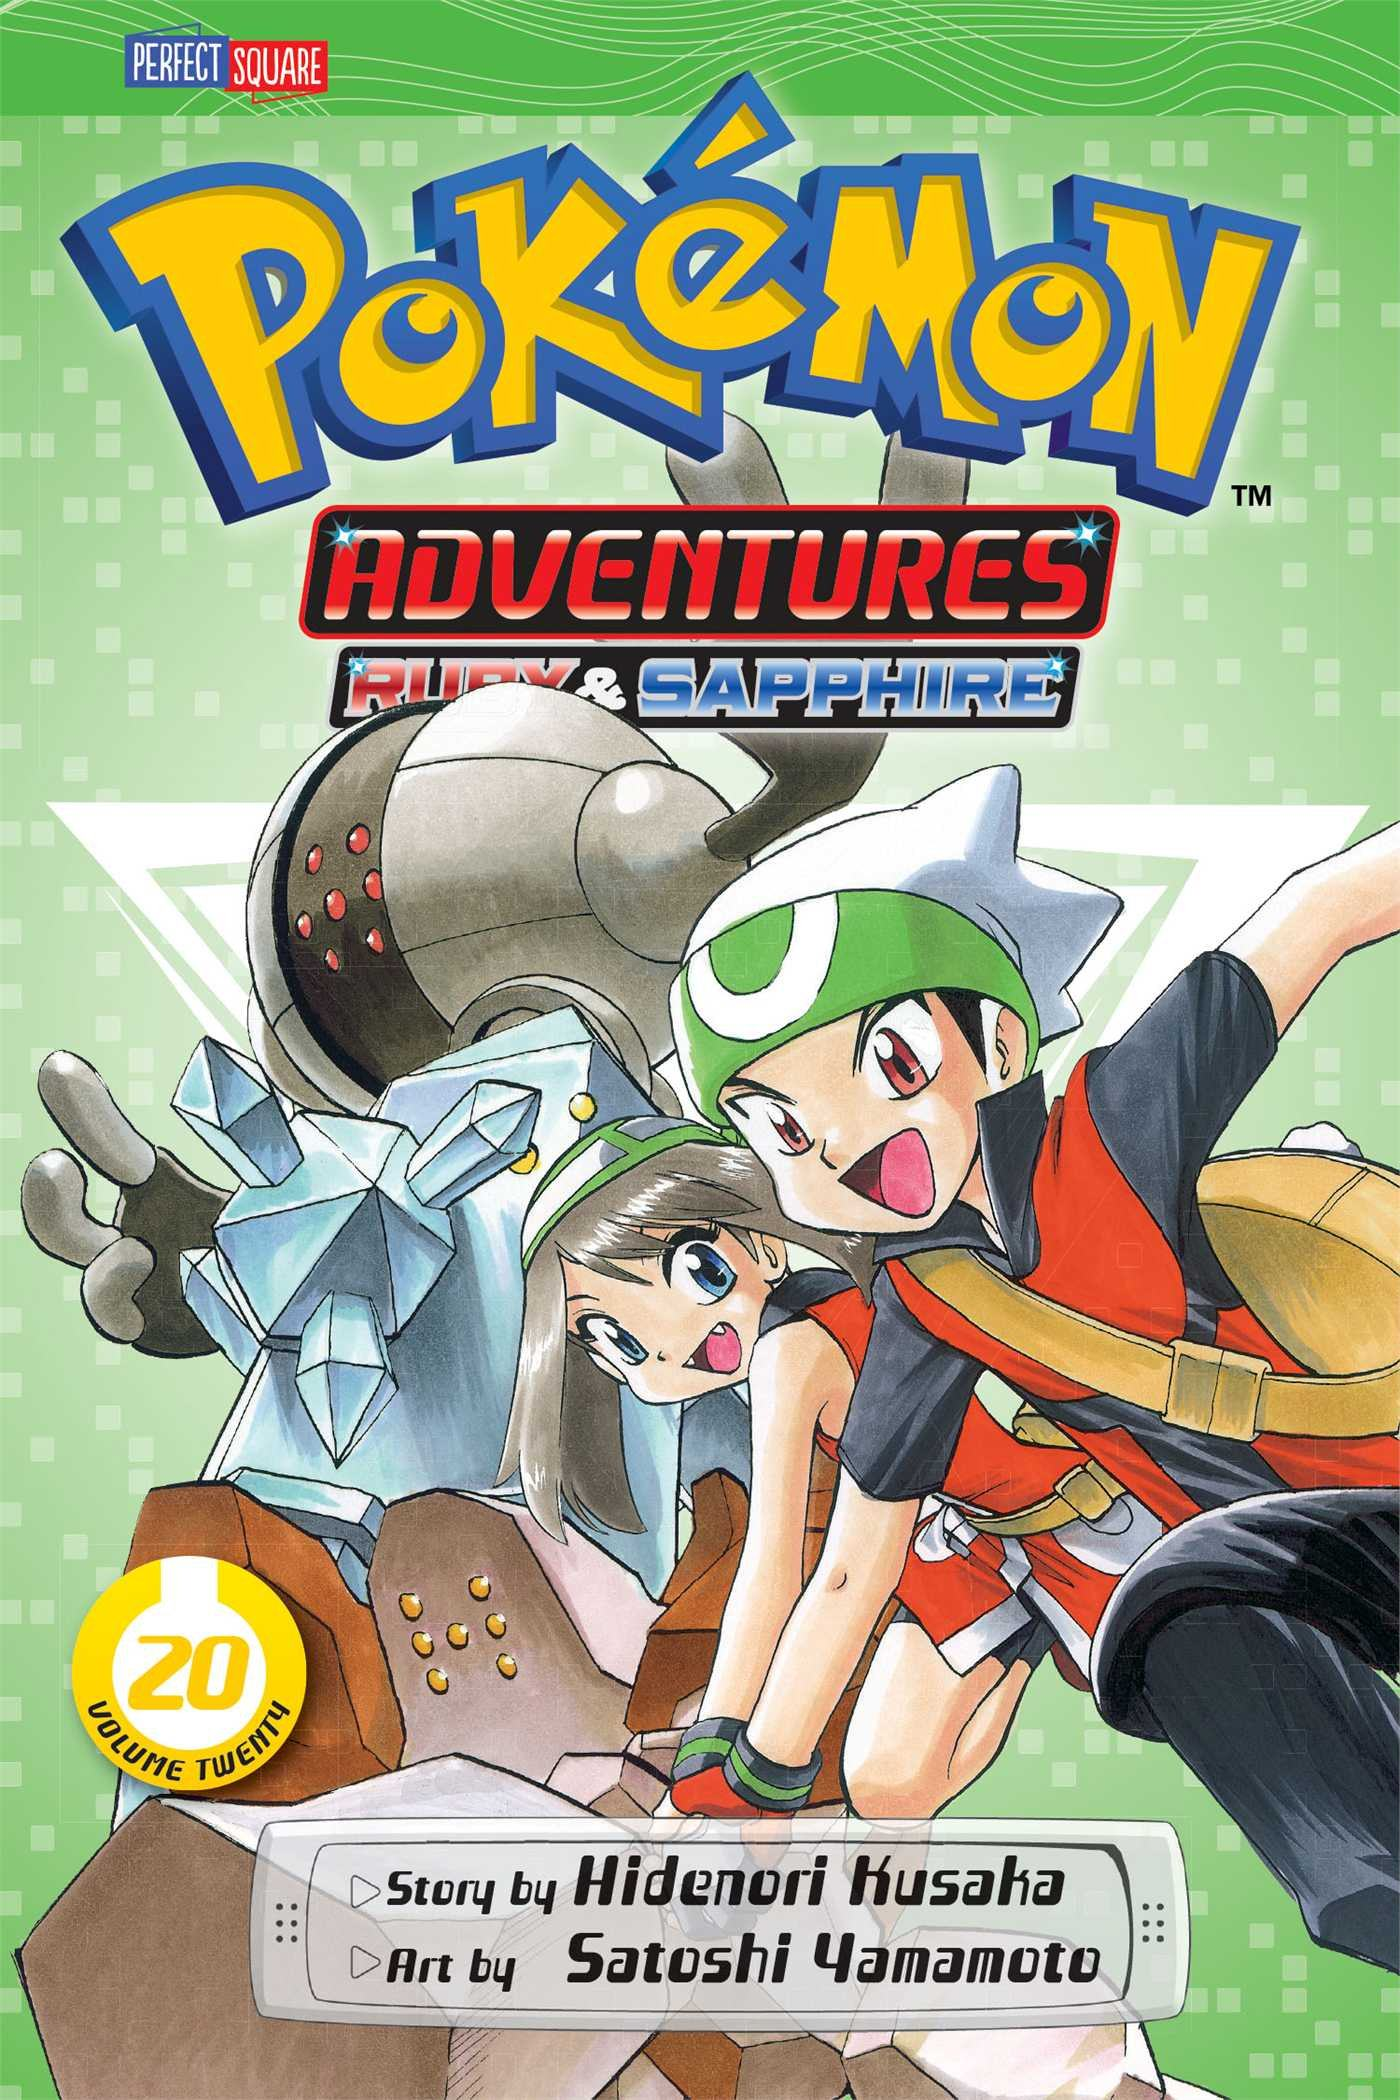 Pokemon_Adventures_v20_cover